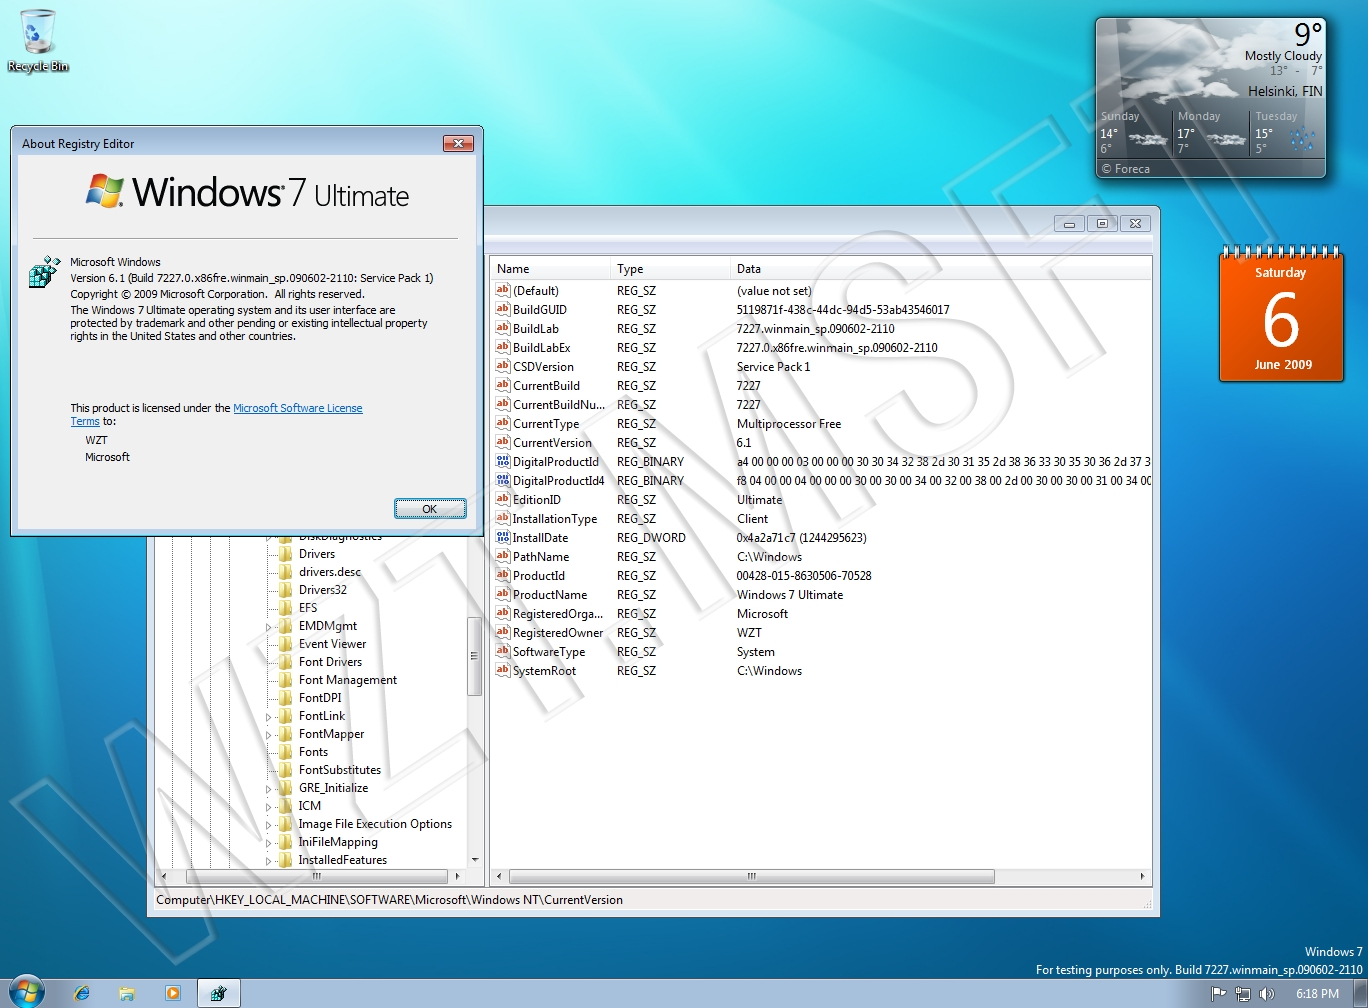 On Day Windows 7 Launched I Installed >> View Topic Leak Windows 7 Sp1 Build 7227 0 Winmain Sp 090602